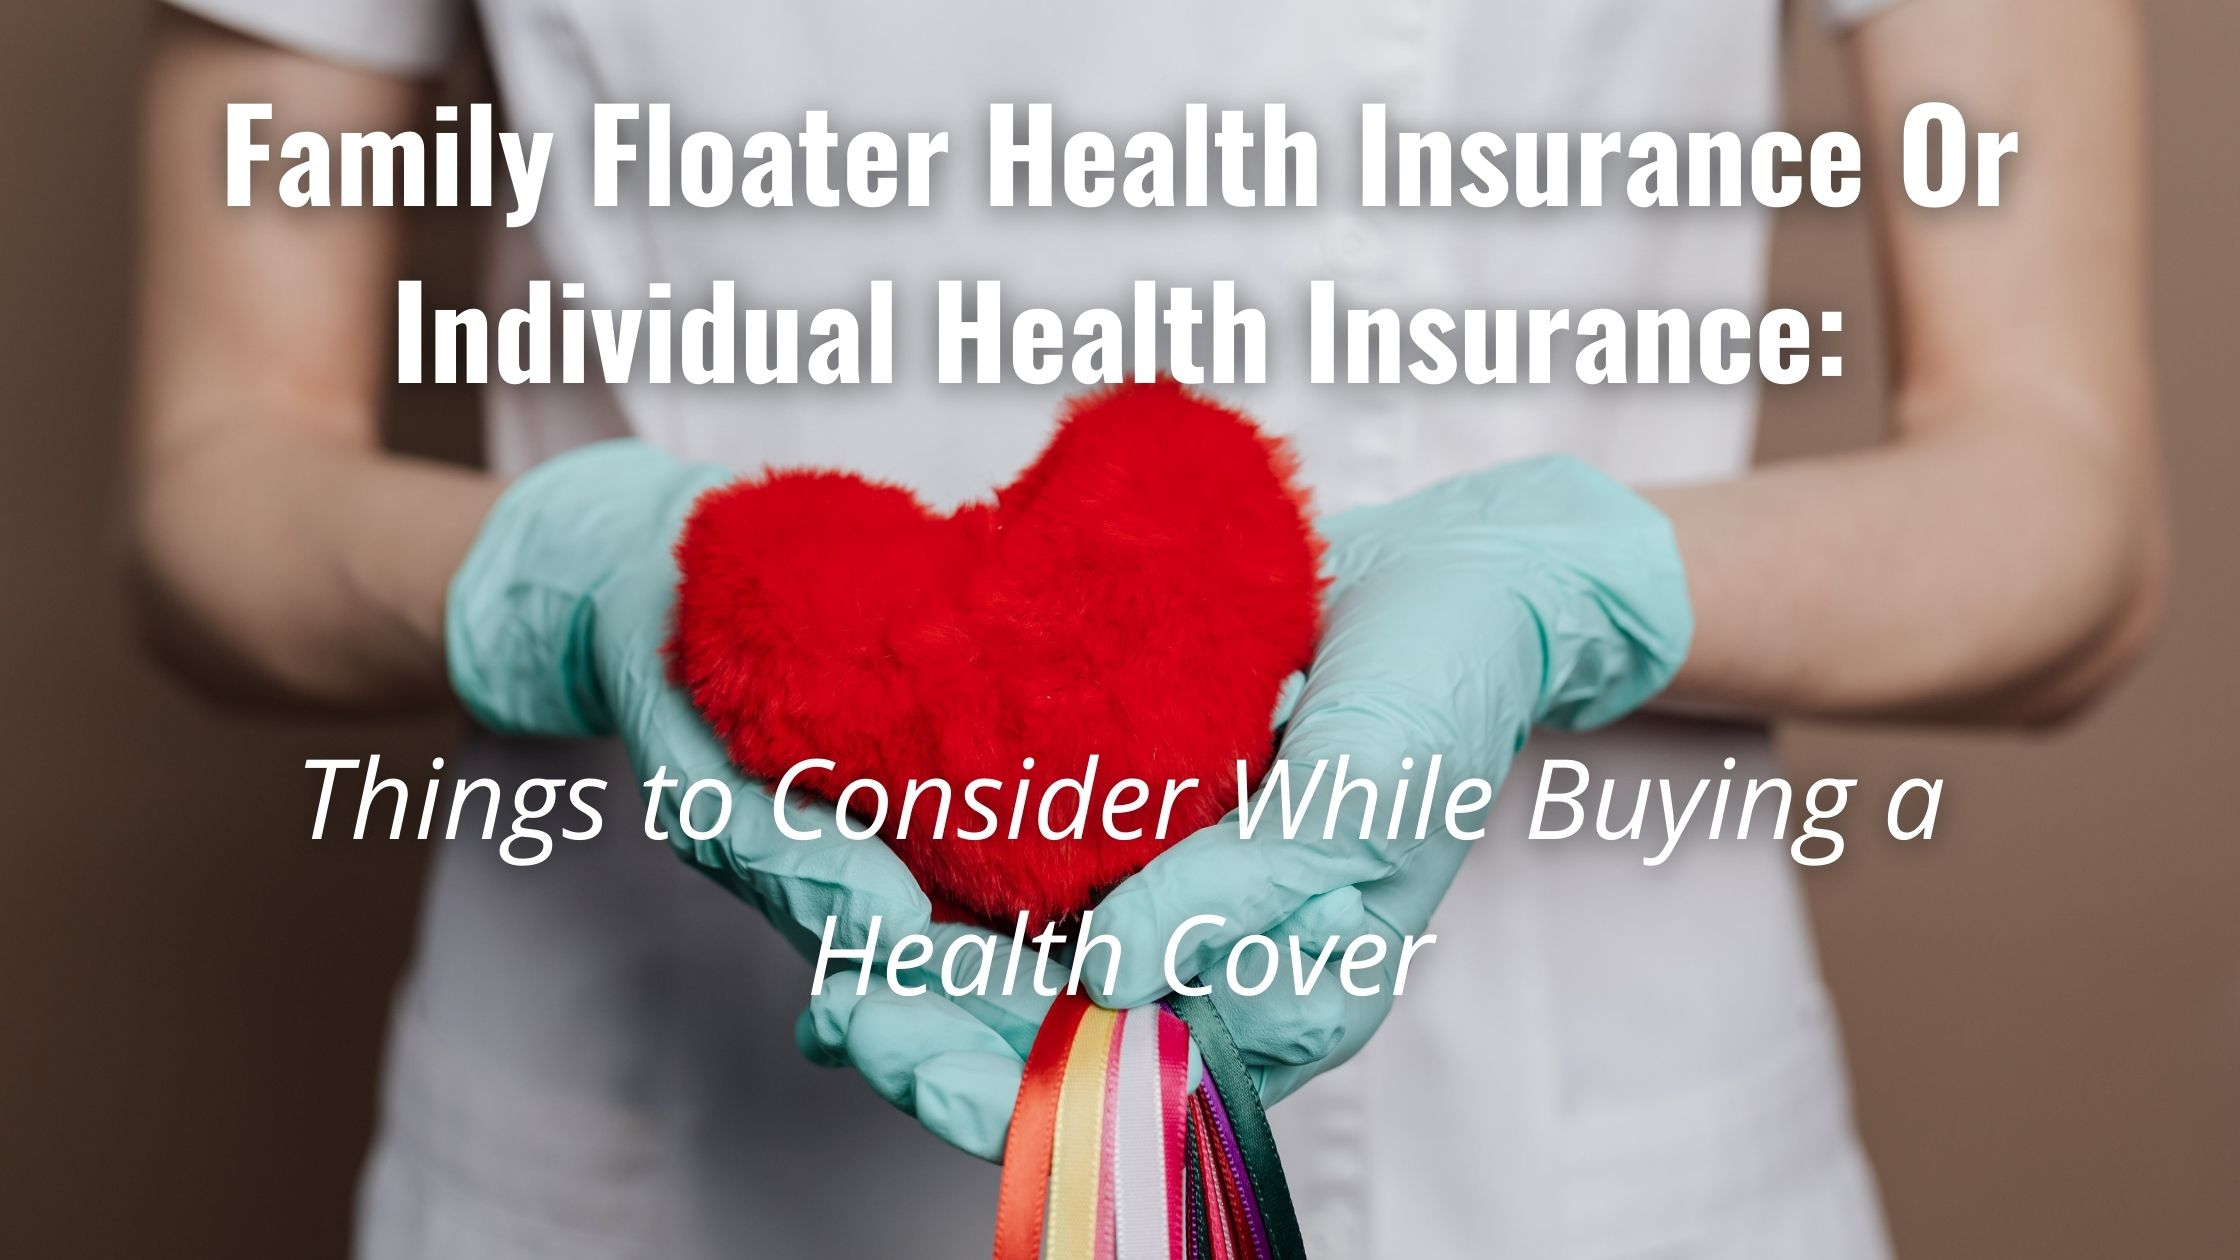 Family Floater Health Insurance Or Individual Health Insurance: Things to Consider While Buying a Health Cover